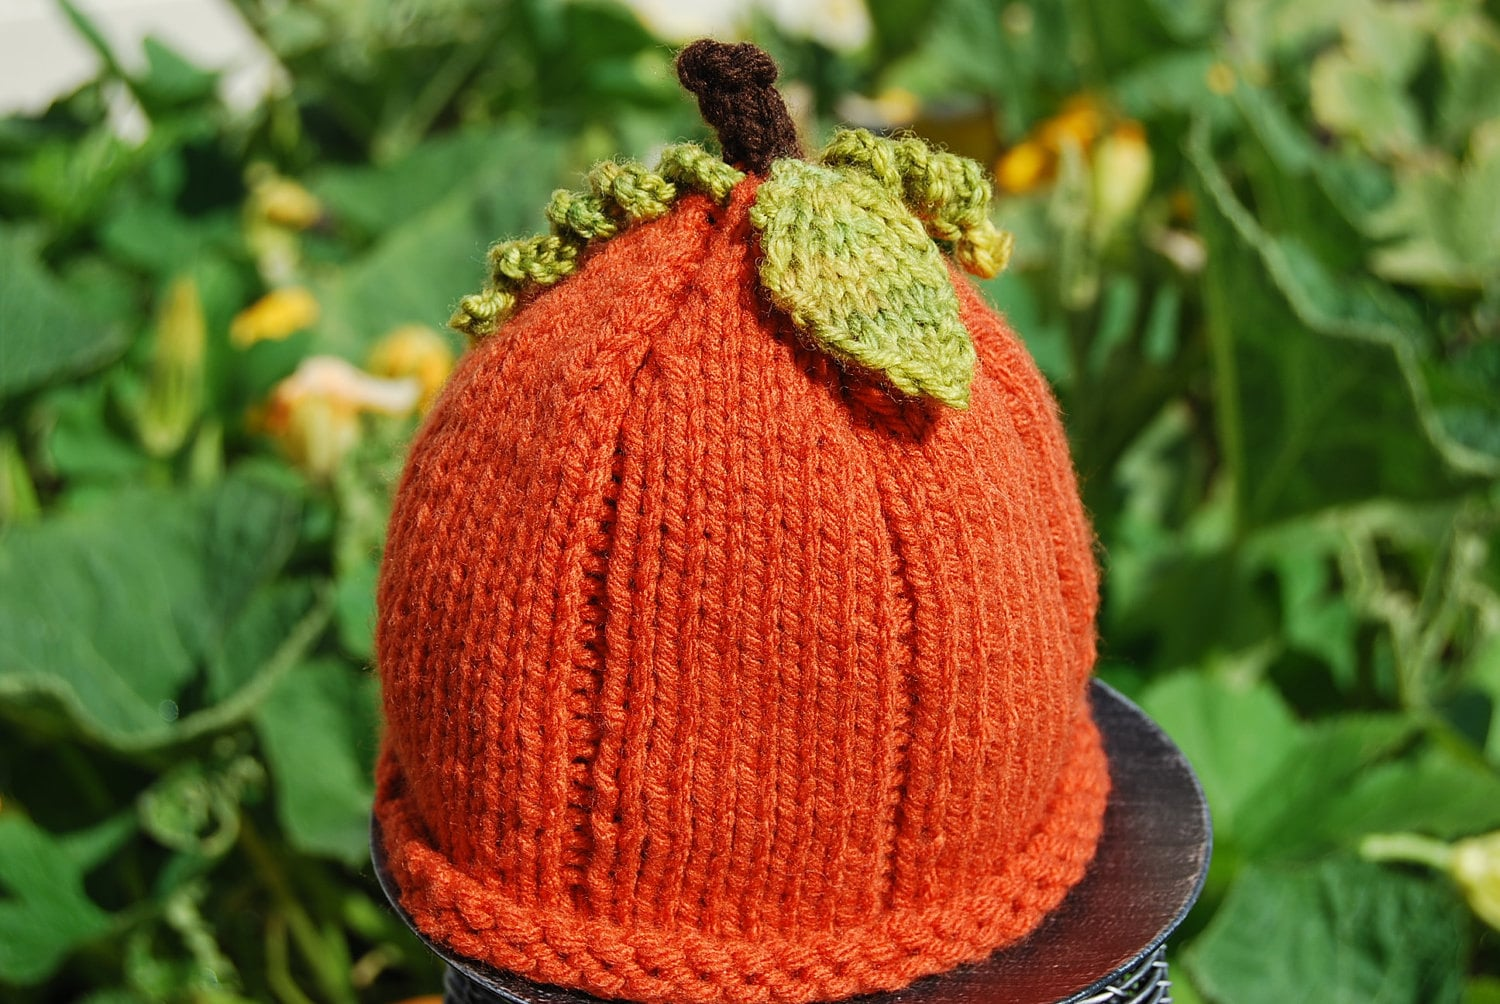 Knitted Rustic Burnt Orange Pumpkin beanie Hat with Knit Curly leaves Newborn Baby or Child Kids Toddler Size - ShoppeBare